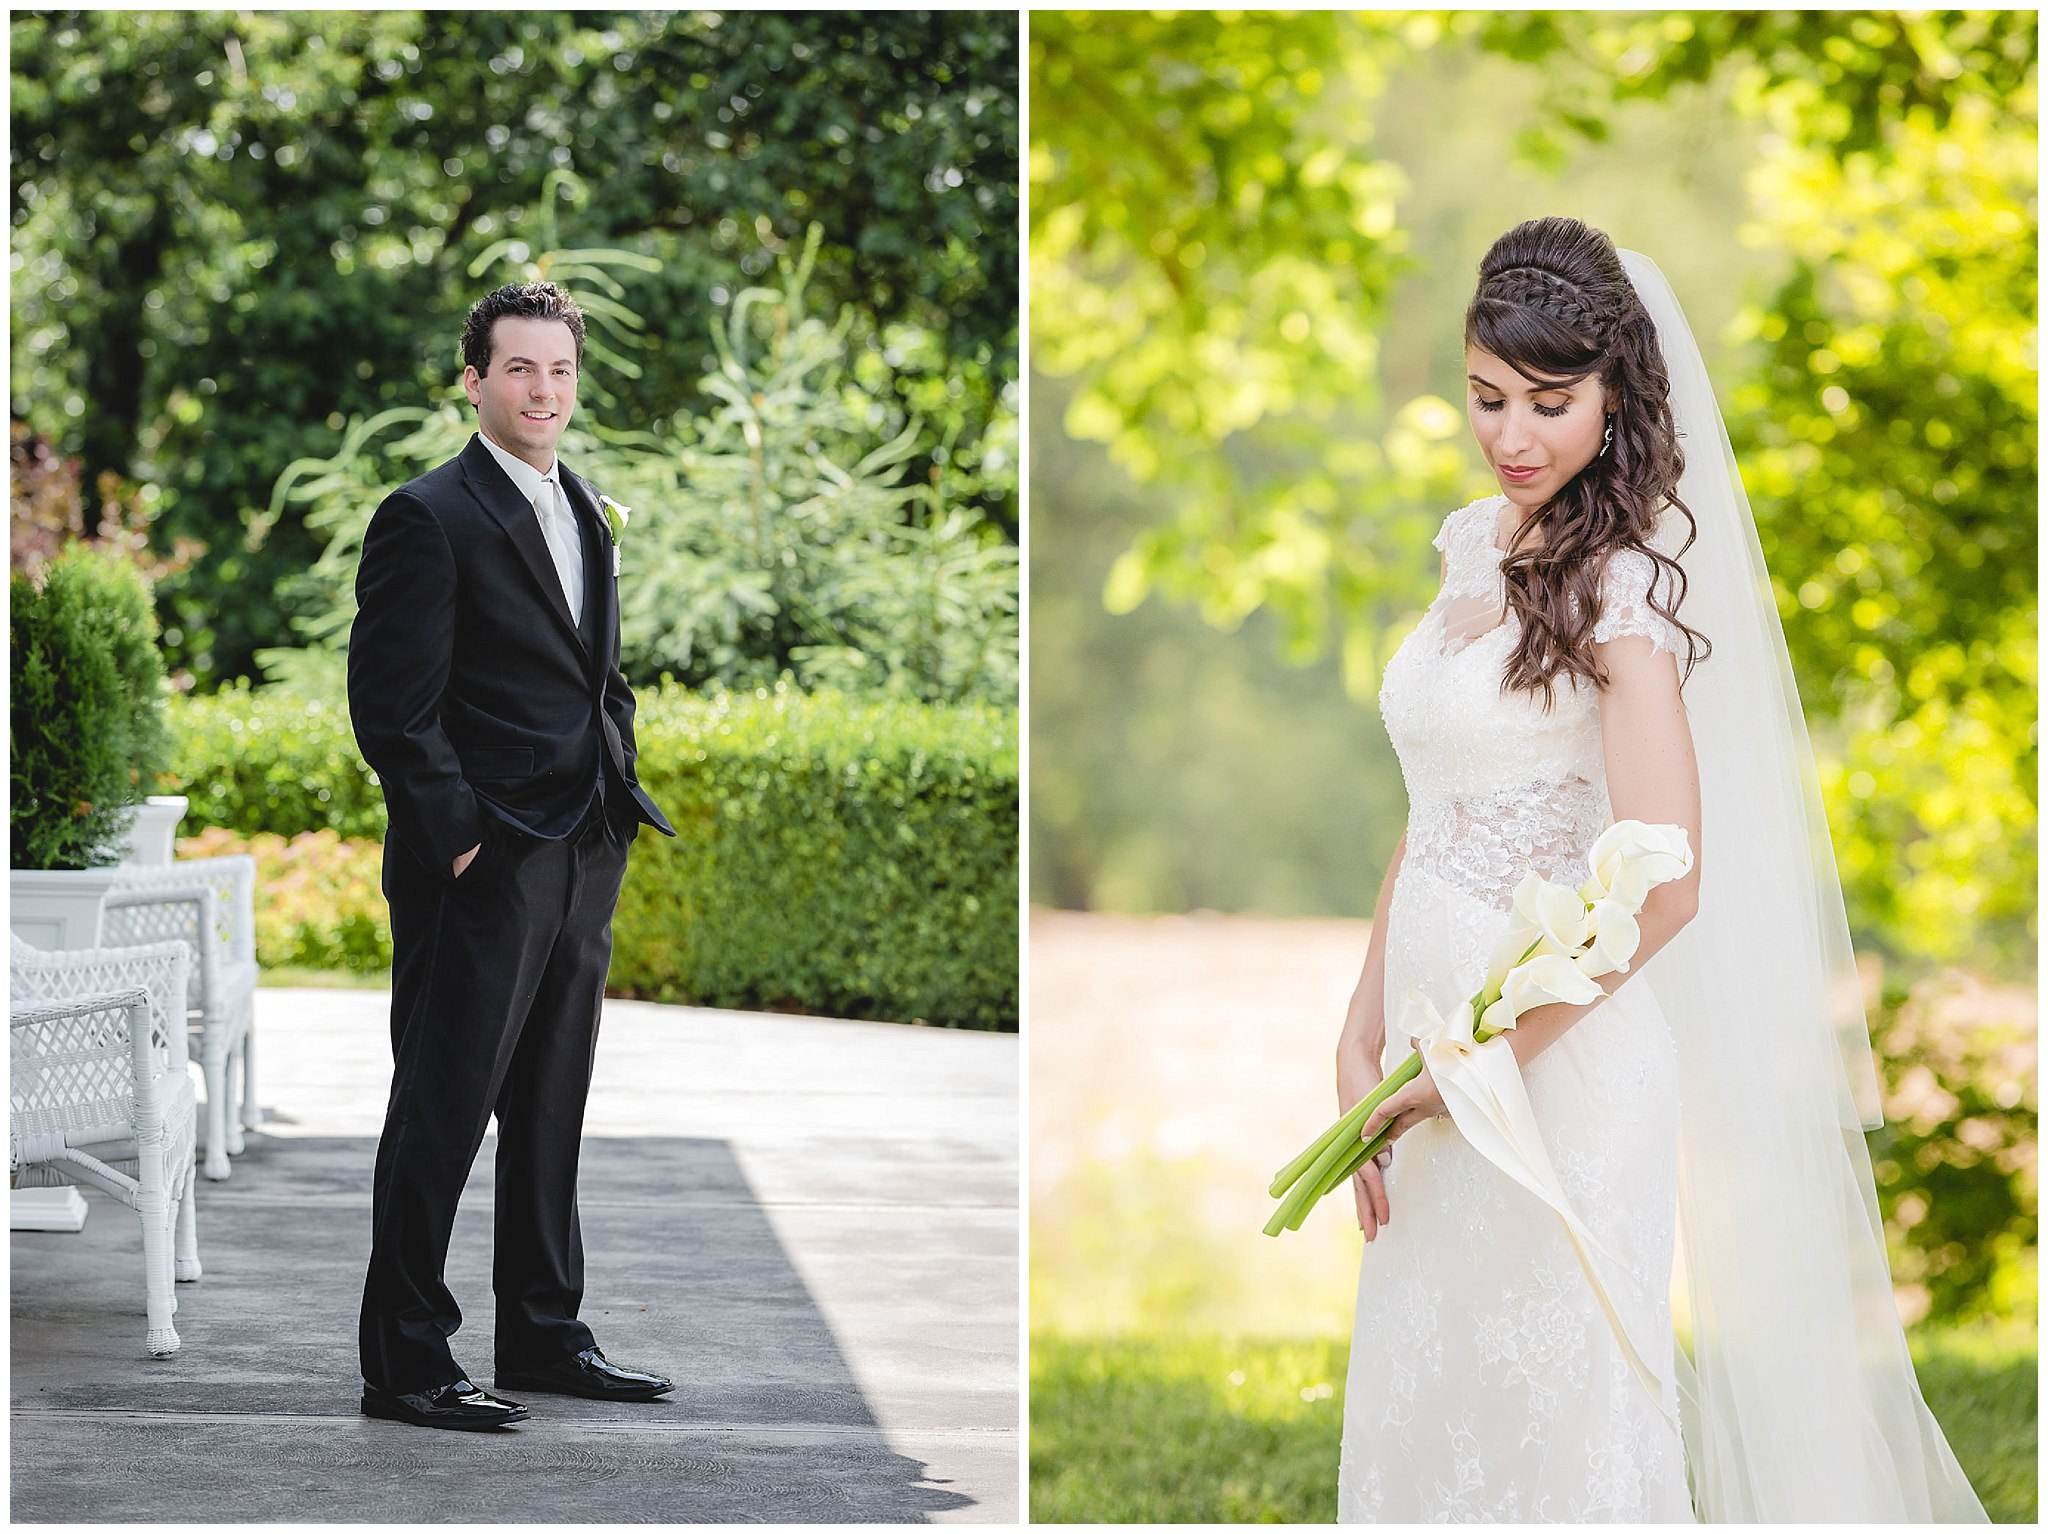 Portraits of the bride & groom at Greystone Fields